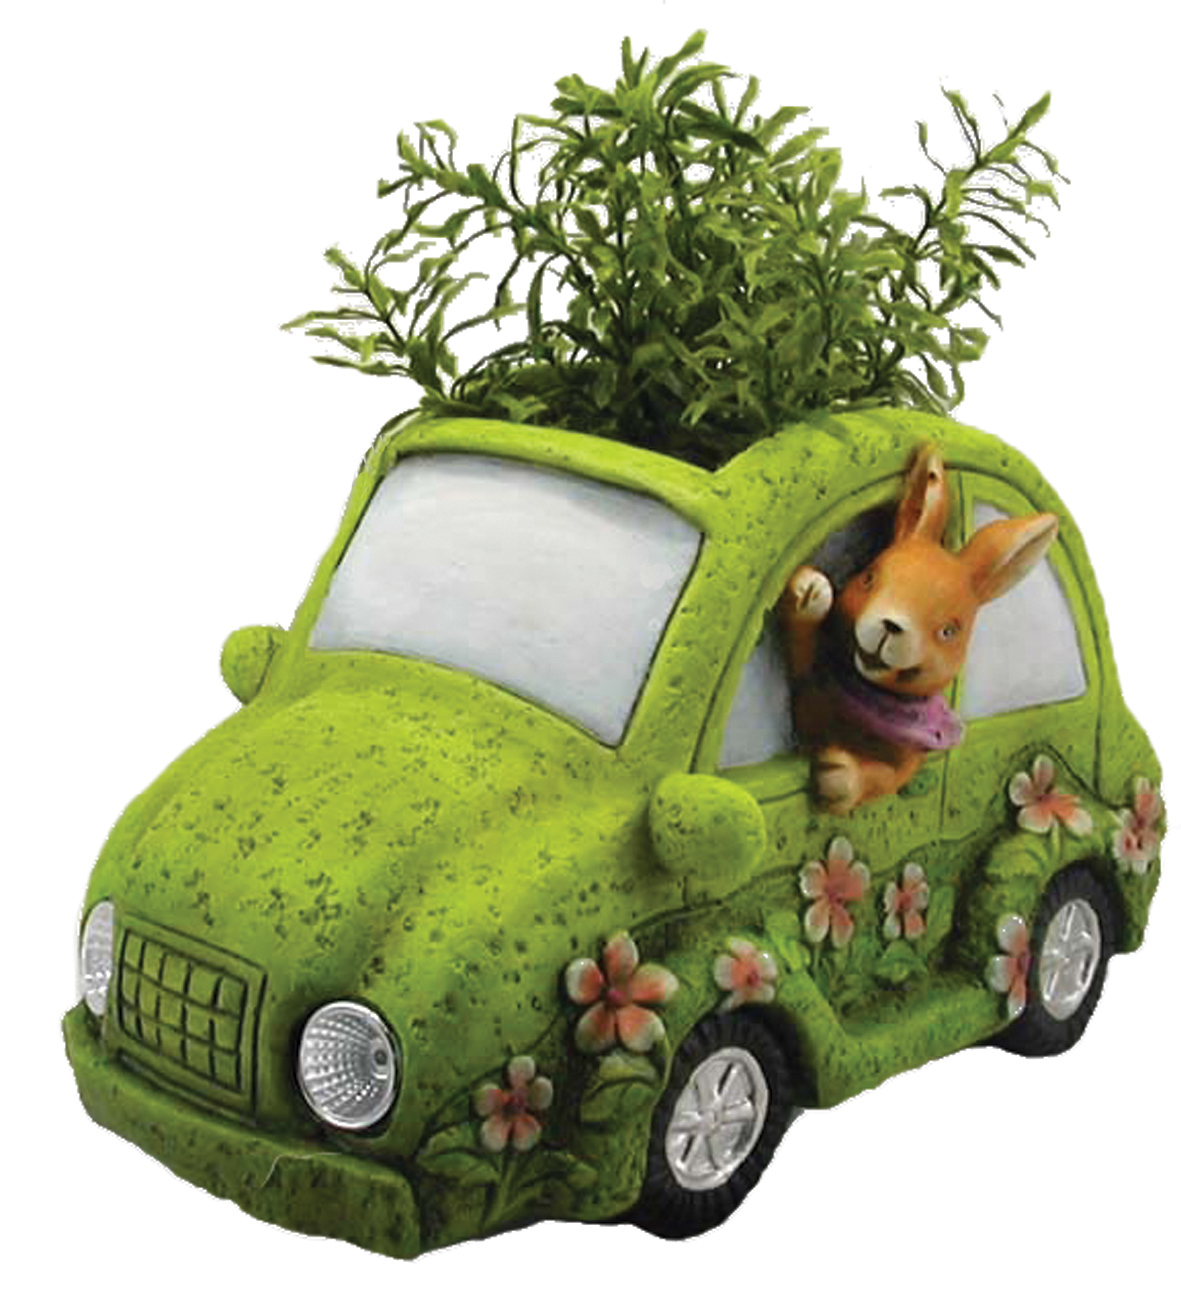 Green Car Planter